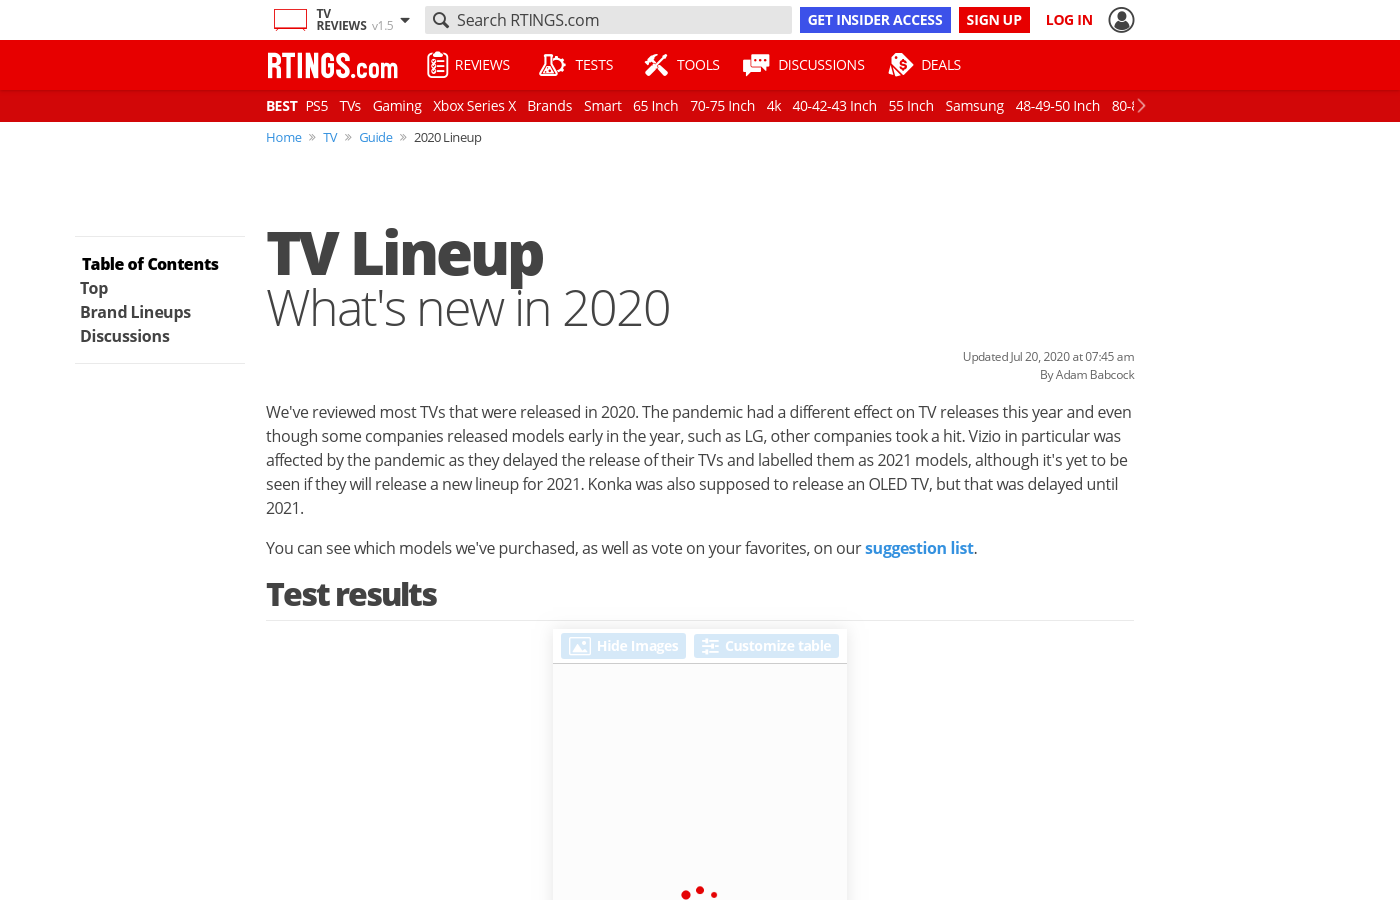 TV Lineup: What's new in 2020